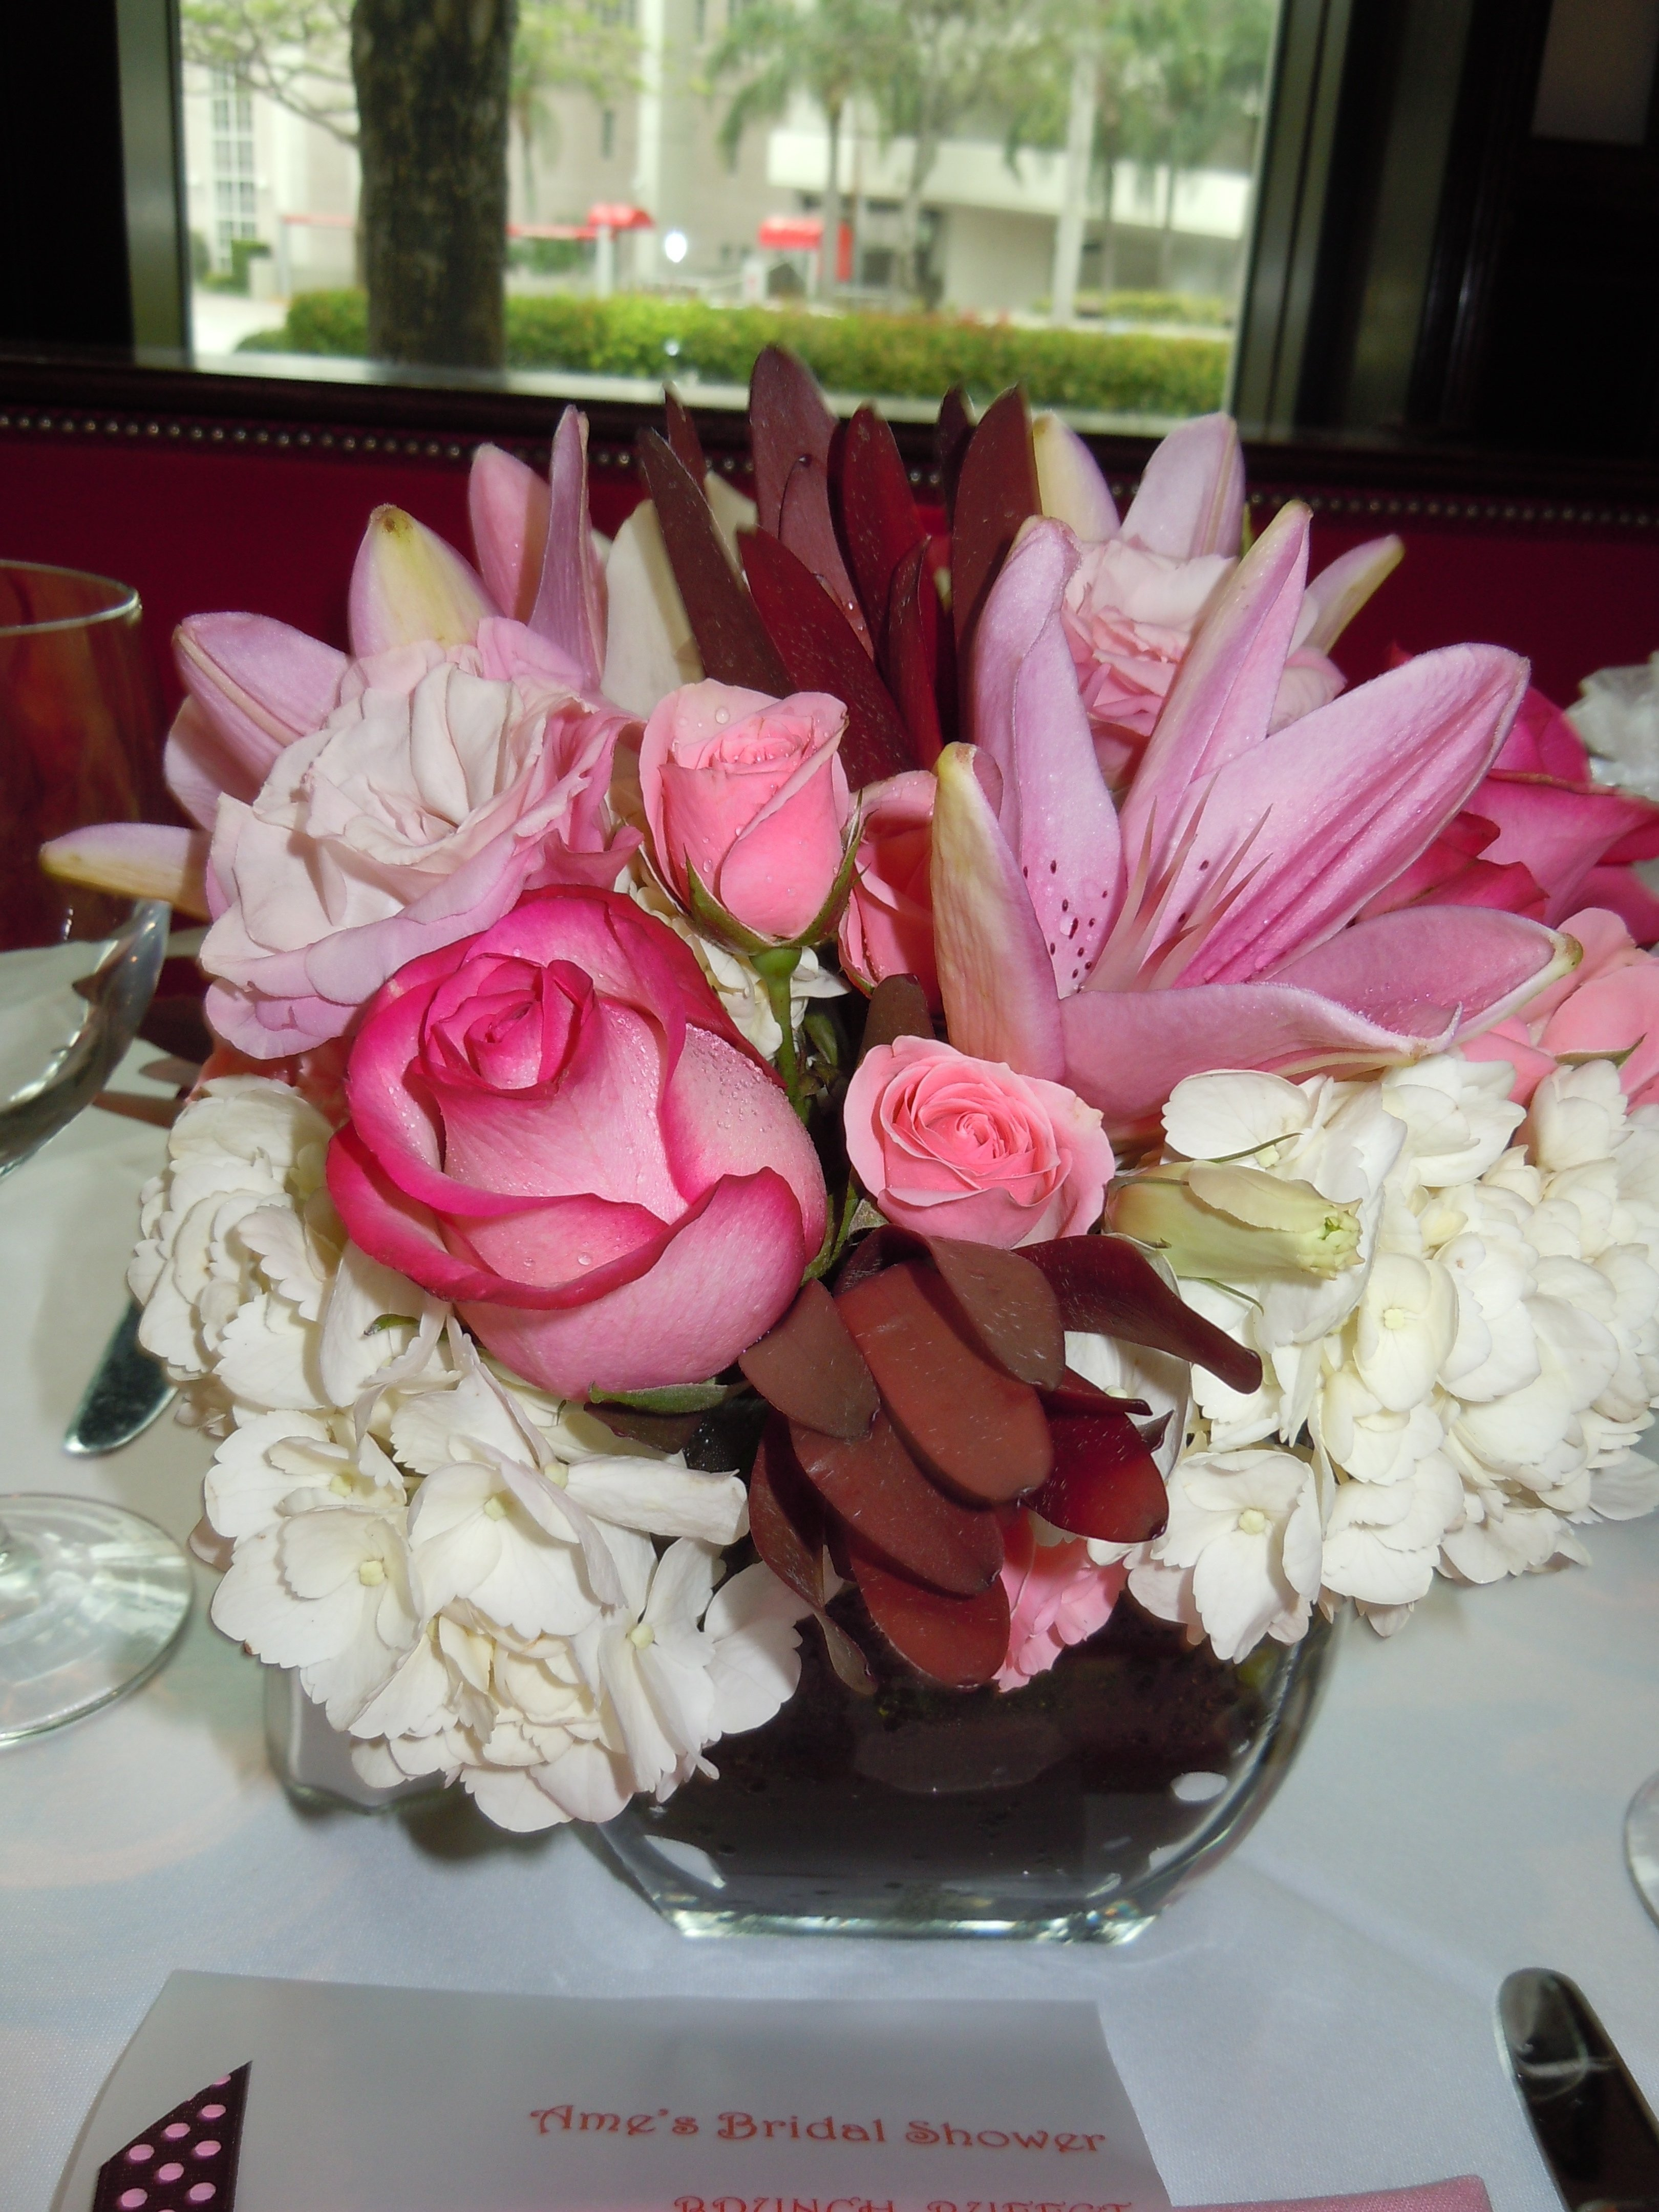 10 Fantastic Pink And Brown Wedding Ideas party ideas pink brown bridal shower motif 2021